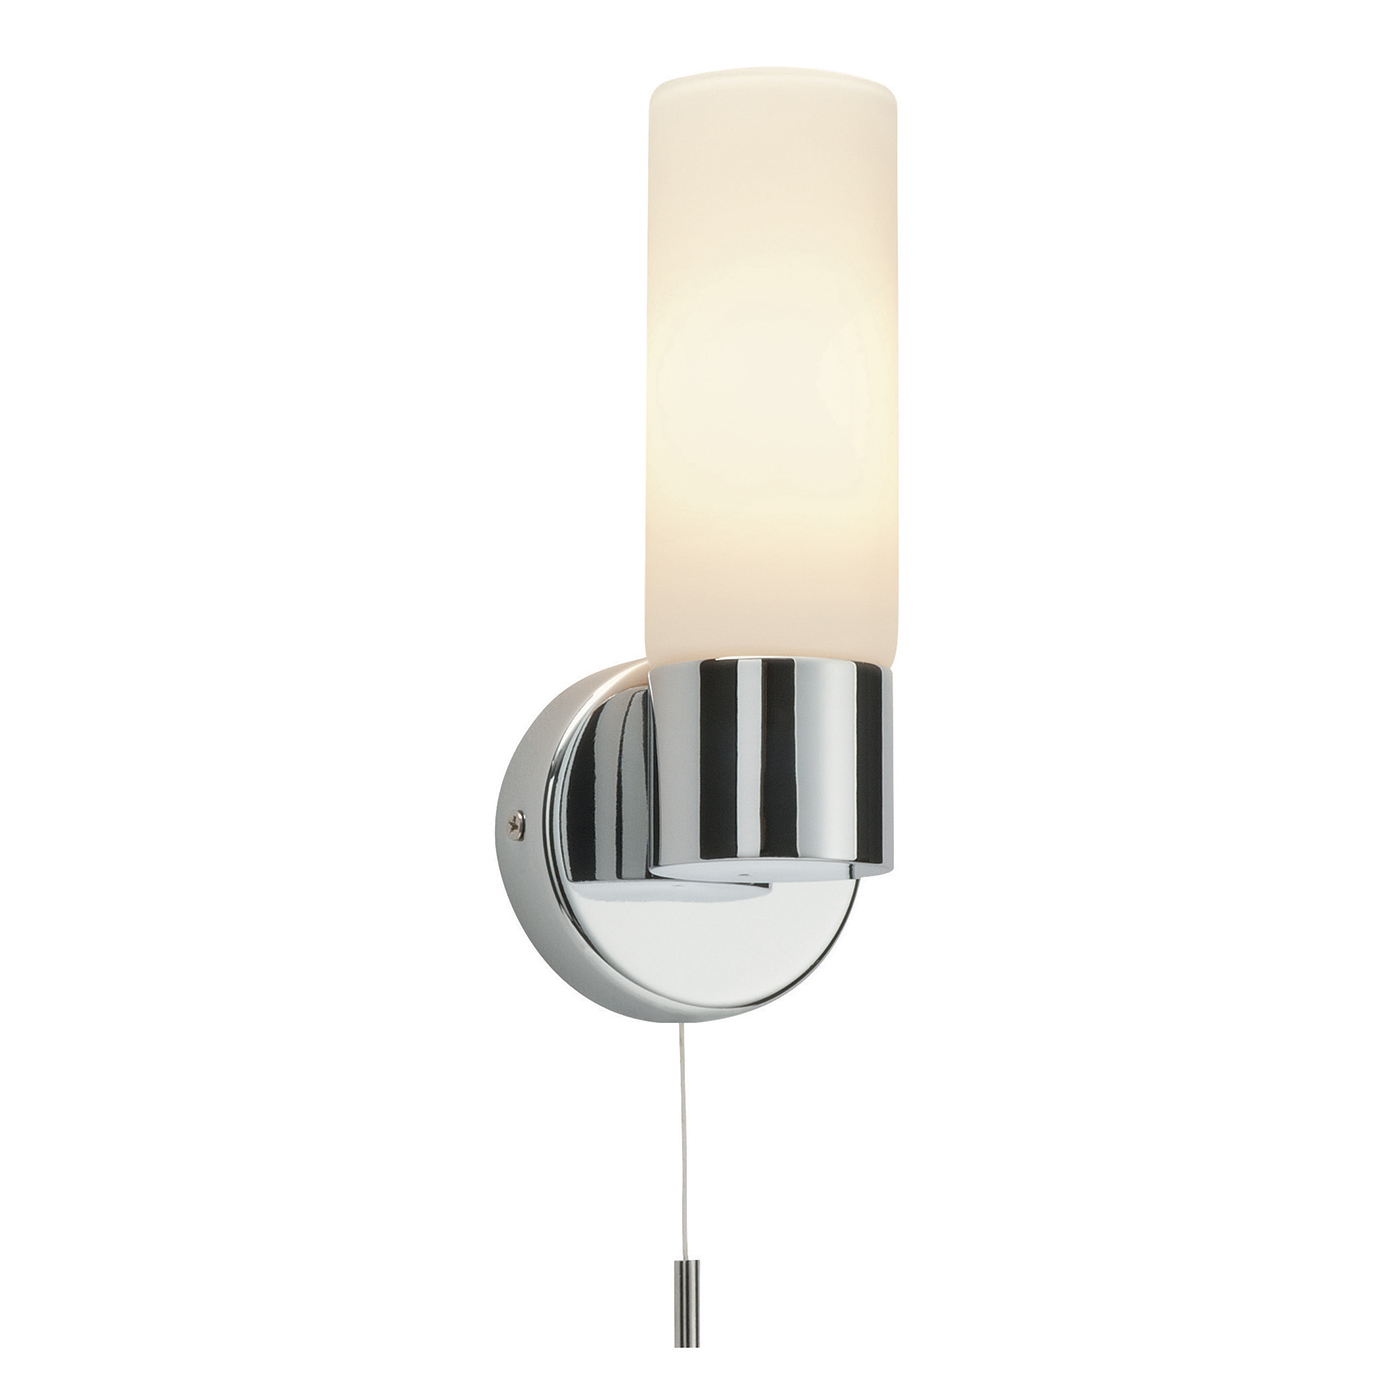 Endon Pure 1lt bathroom wall light IP44 40W Chrome & opal glass pull cord Thumbnail 1